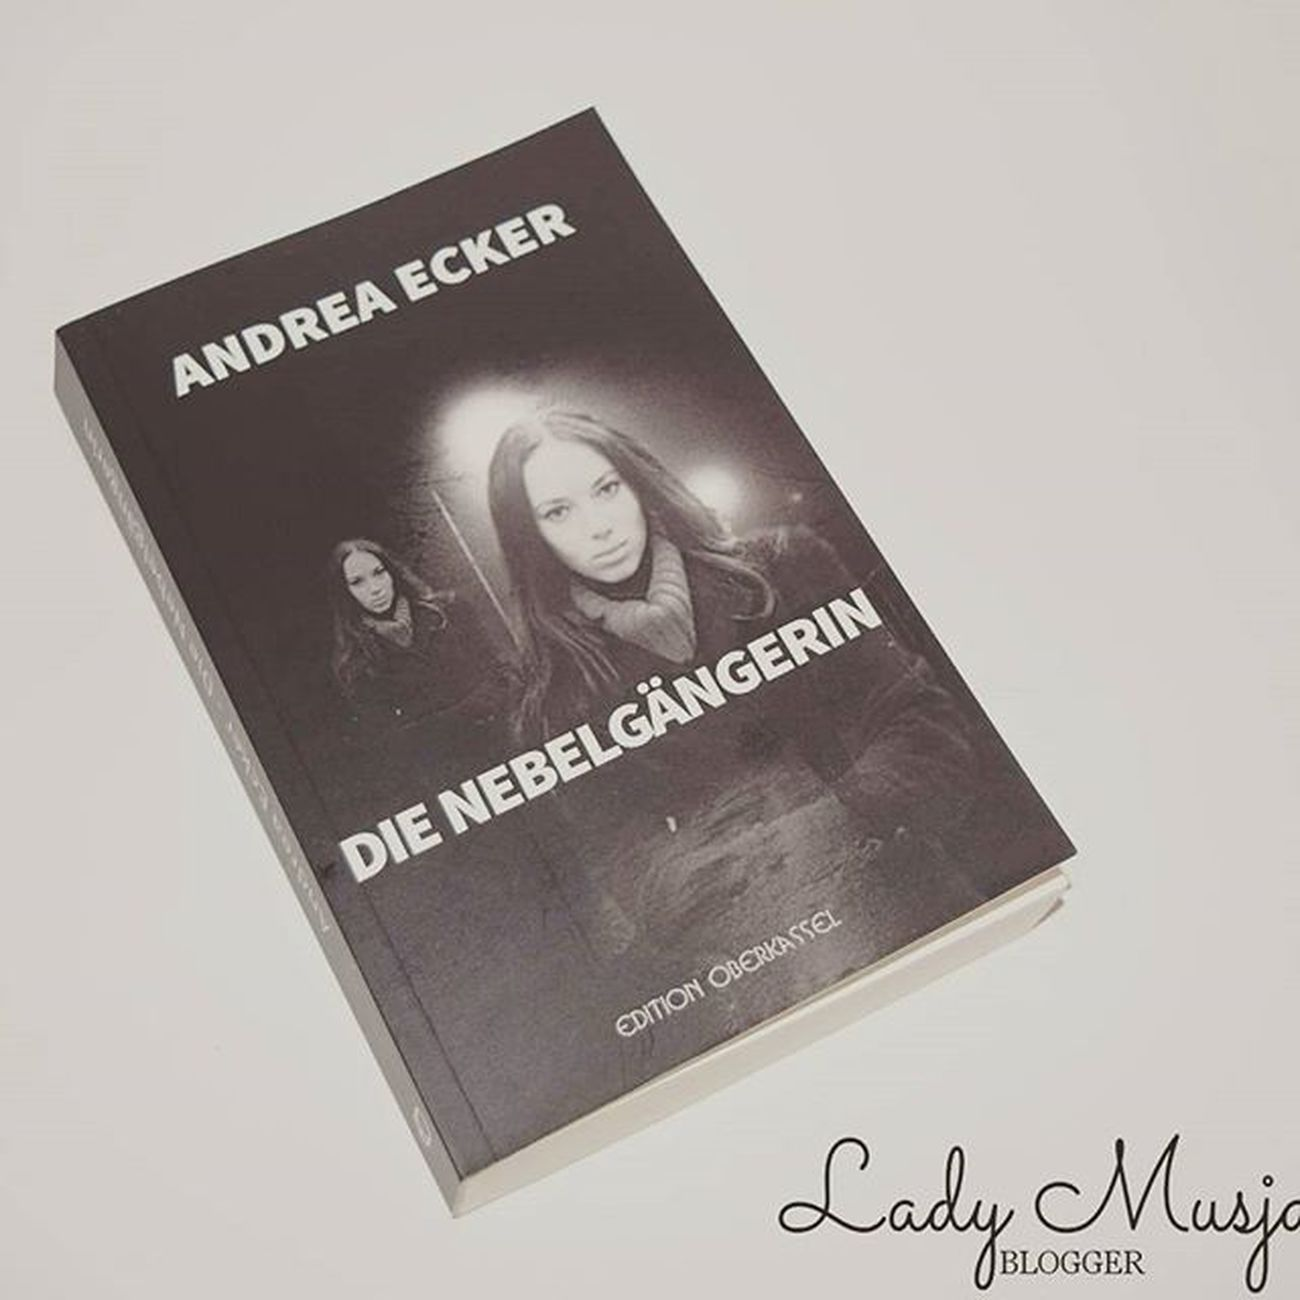 Buch die Nebelgängerin von Andreaecker auf meinen Blog. Editionoberkassel Bücher  Bücherwurm Bücherliebe Book Books Booksworm Bookstagram Prsample Blogtour